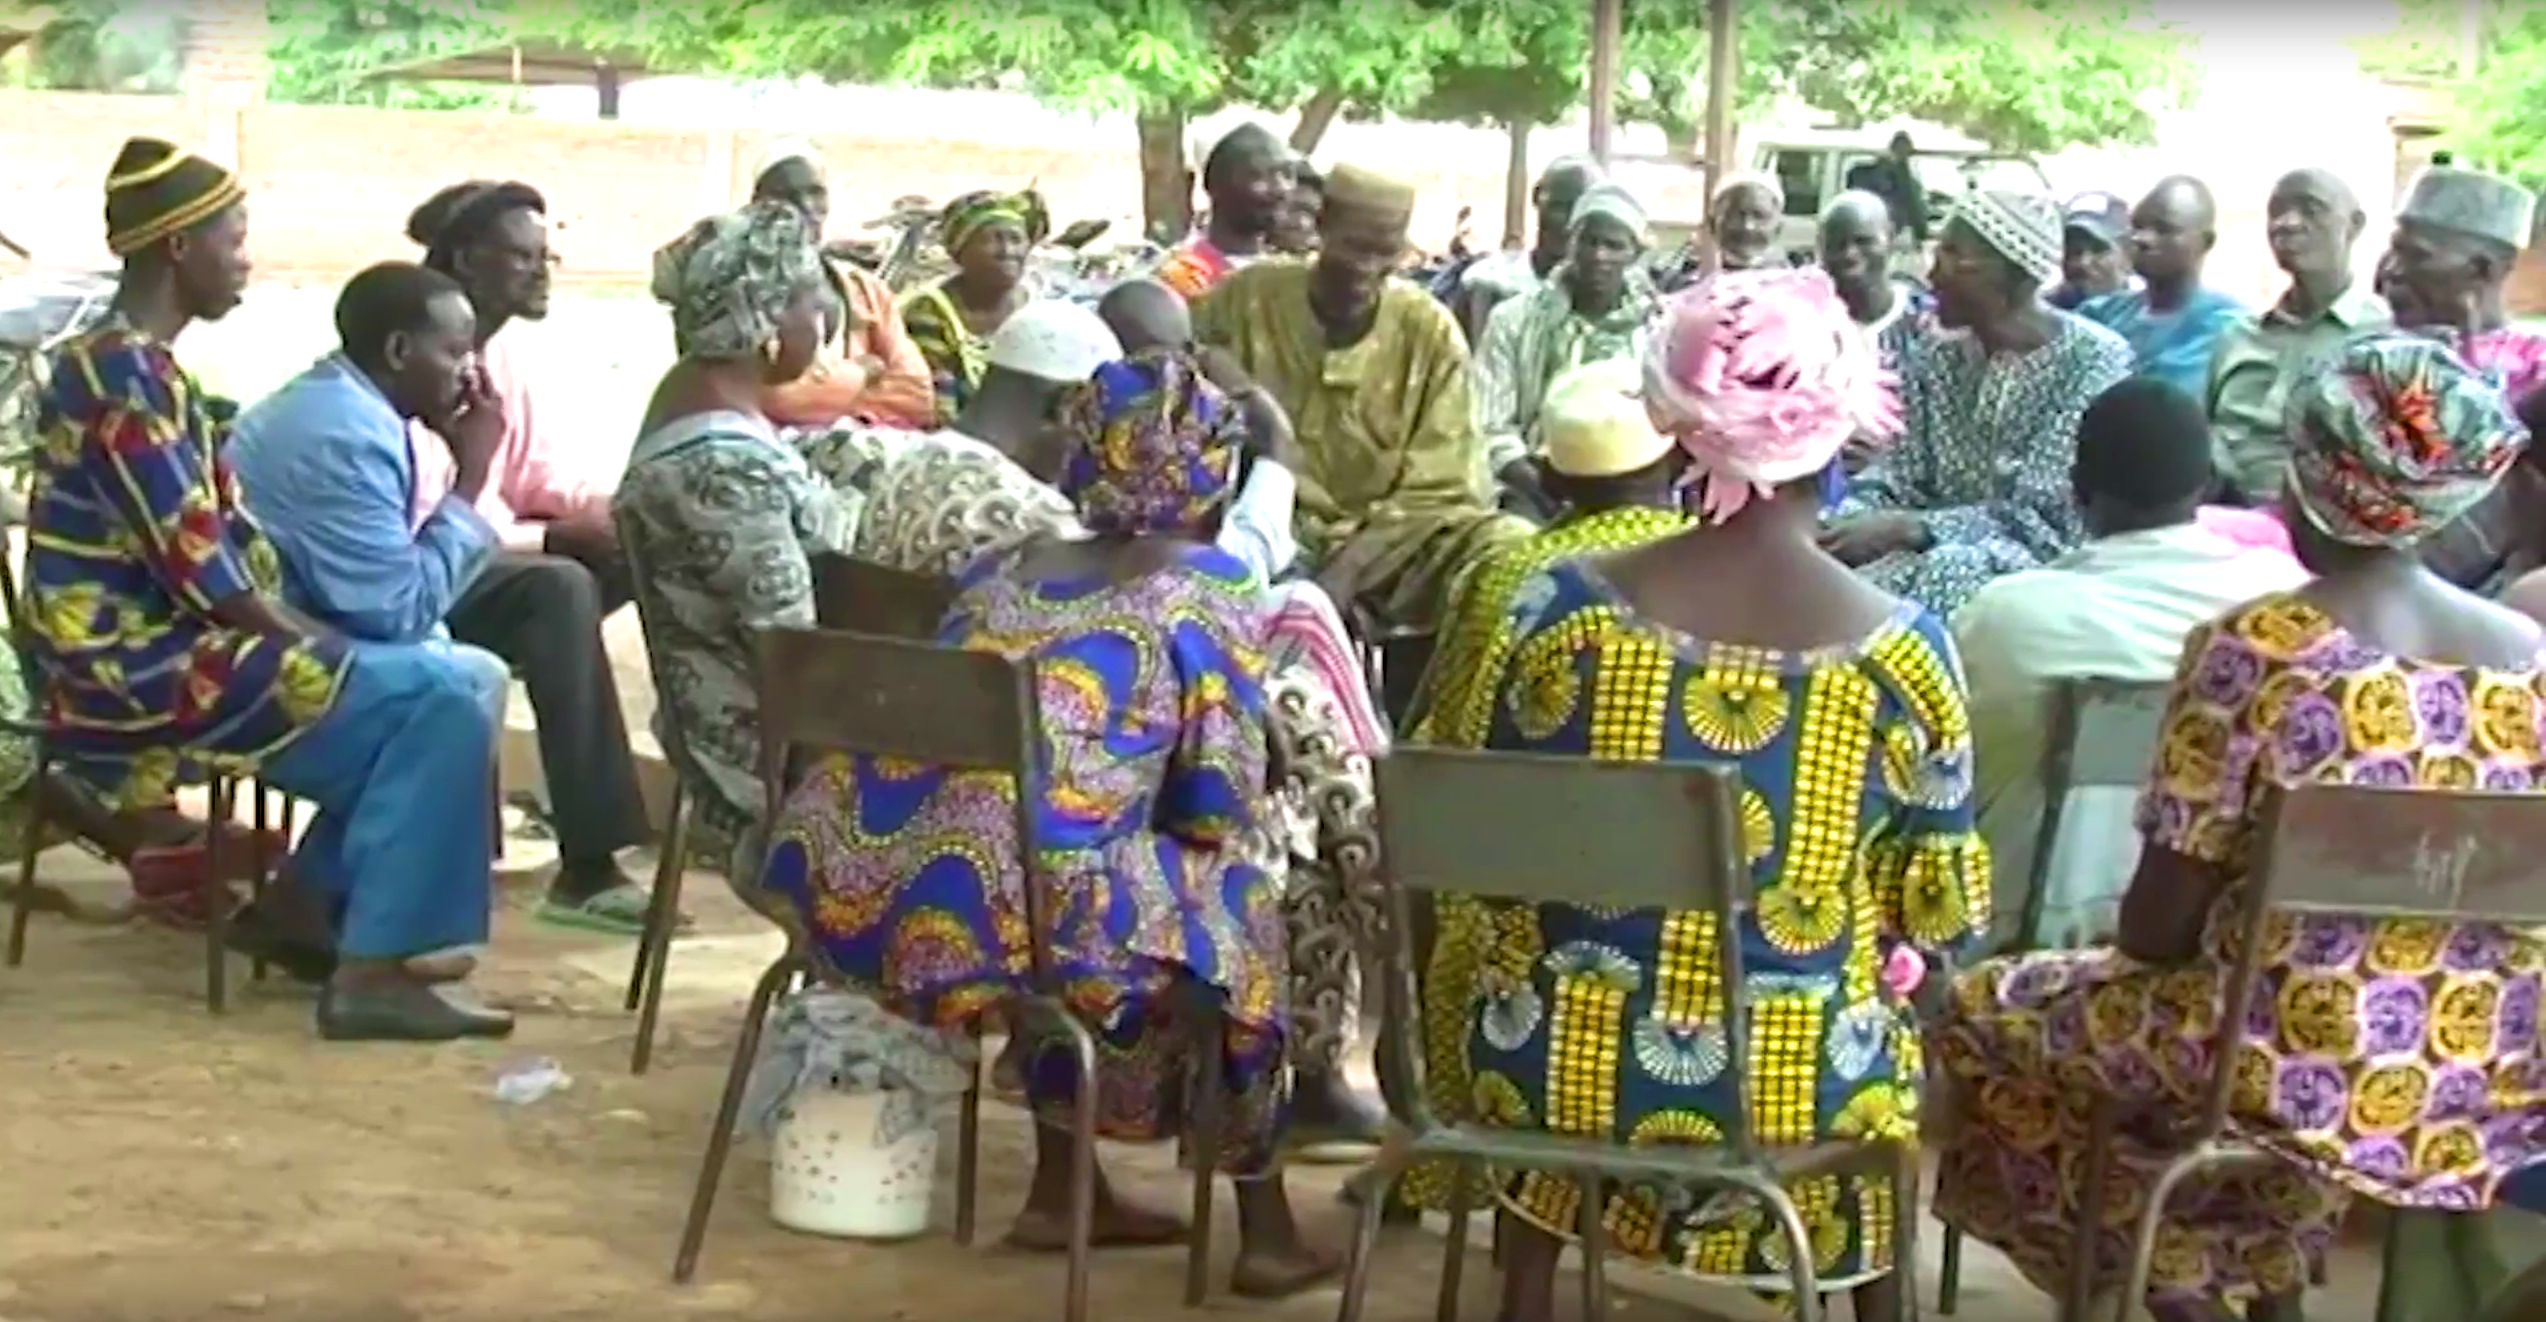 Land and forest tenure support project benefiting local communities in Mali